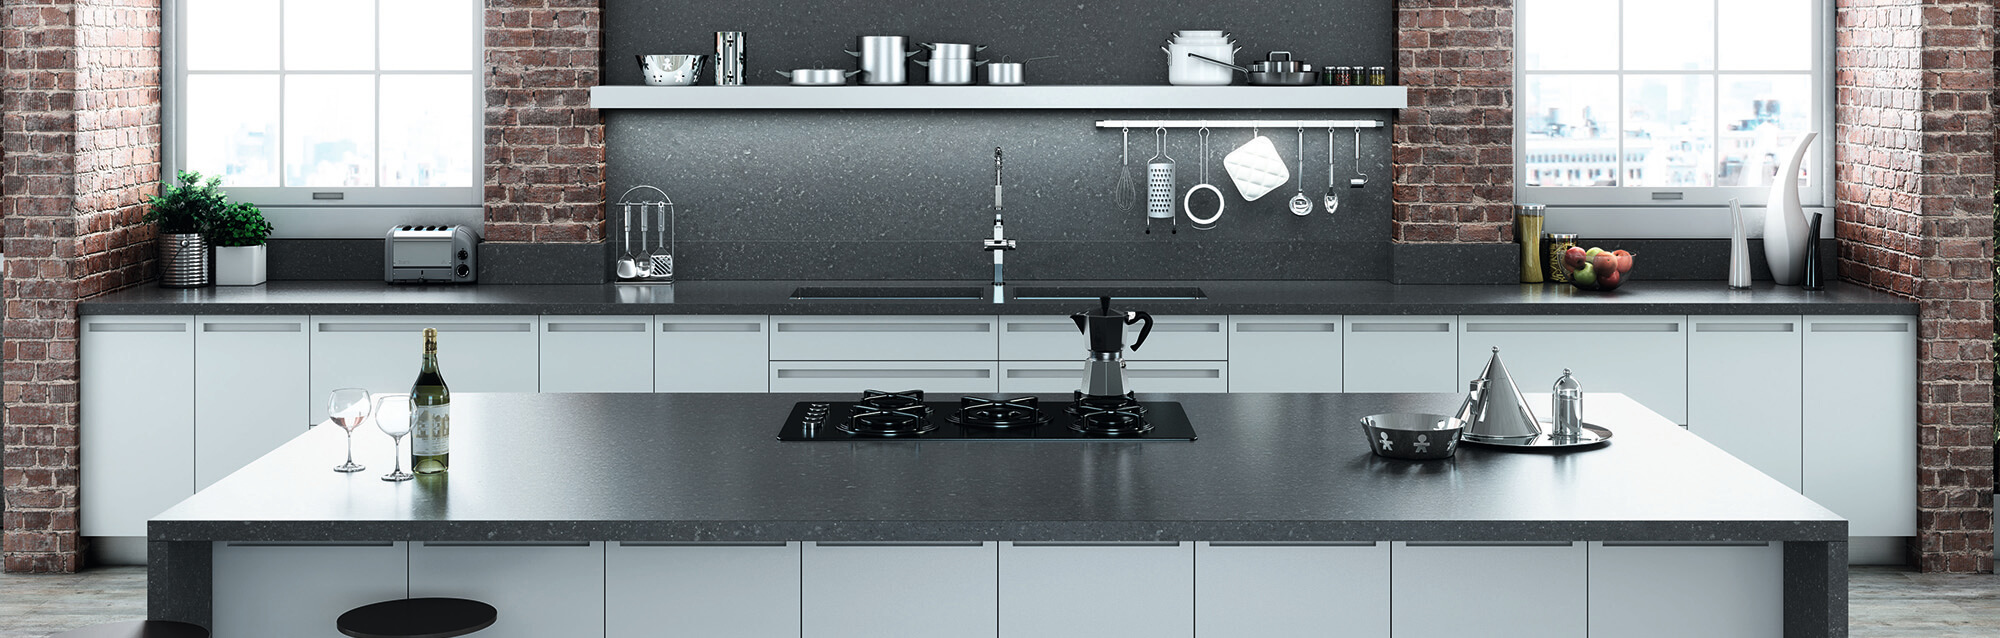 Choose an Essastone benchtop as your kitchen benchtop - Essastone kitchen benchtops are quality engineered benchtops that give every kitchen a modern feel and touch